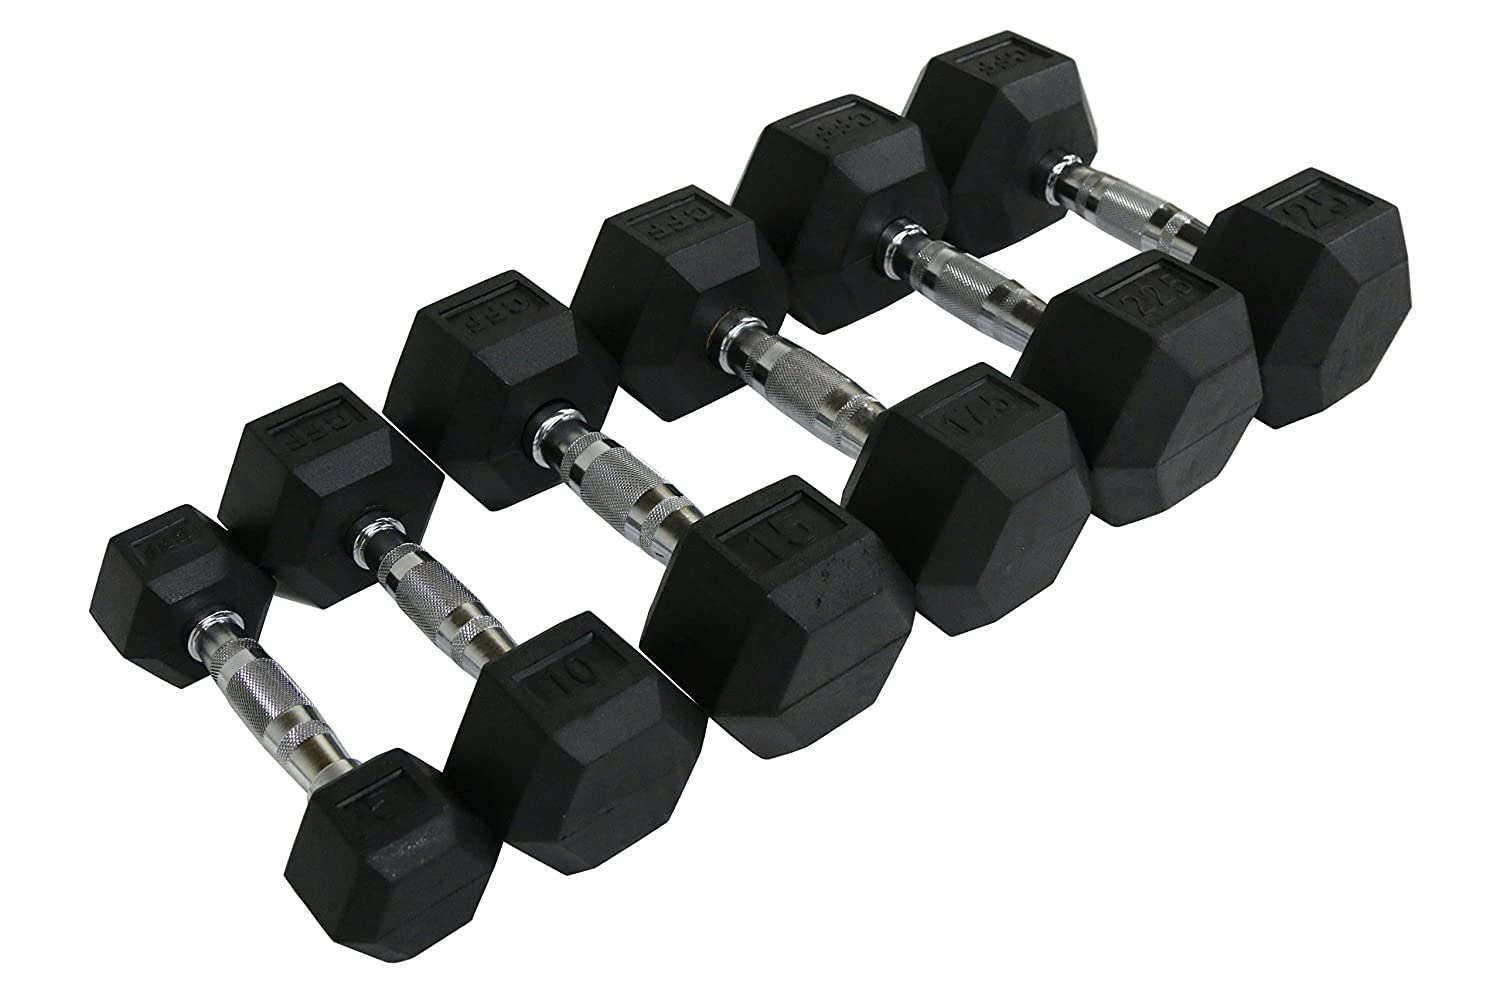 CFF Rubber Hex Dumbbell - Single Dumbbell CFF-RHD-015-PARENT